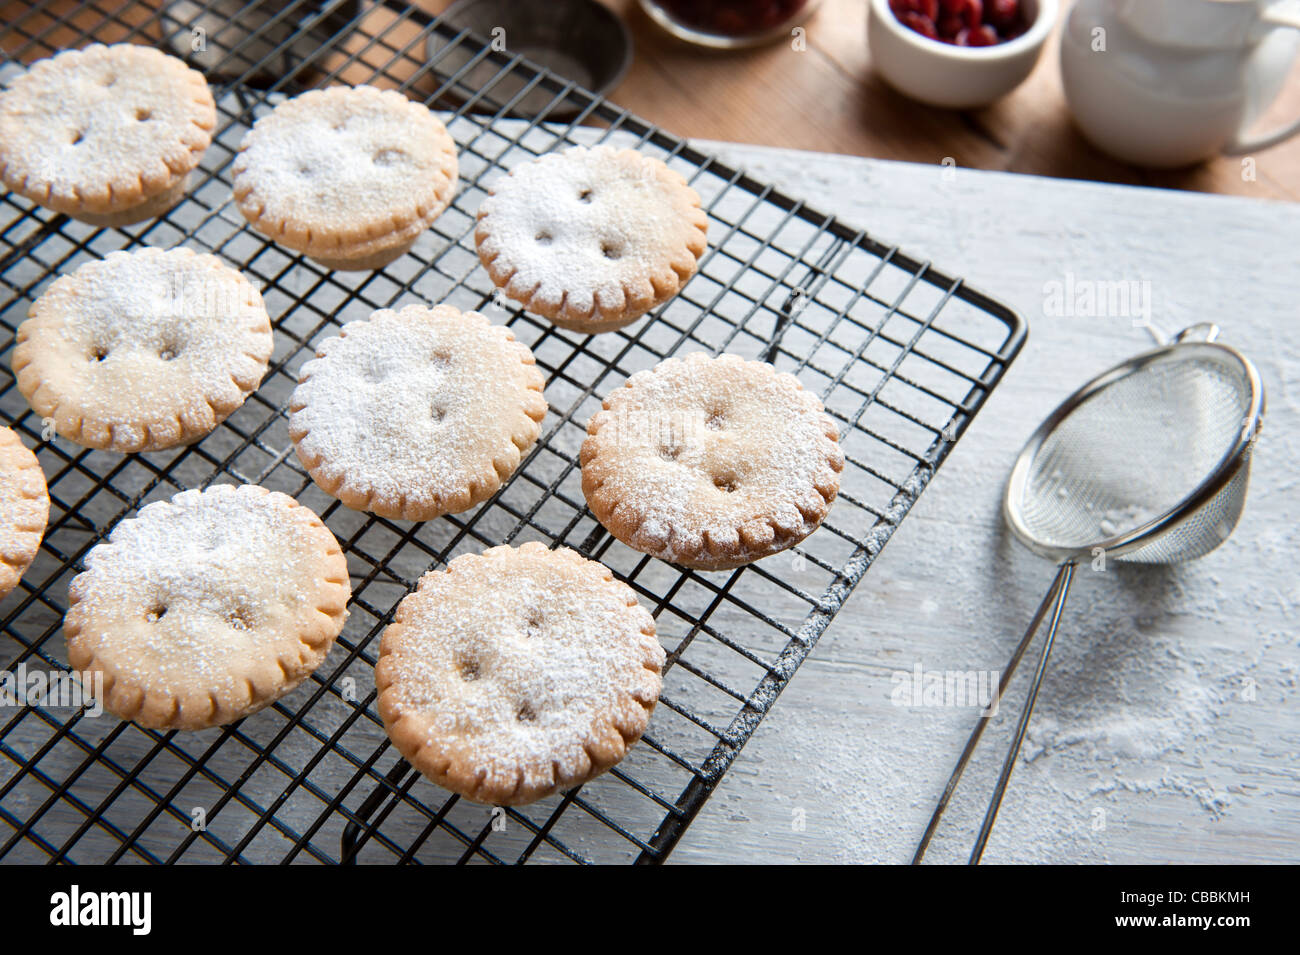 Freshly Baked Mince Pies on a Cooling Rack and Been Sprinkled With Icing Sugar - Stock Image